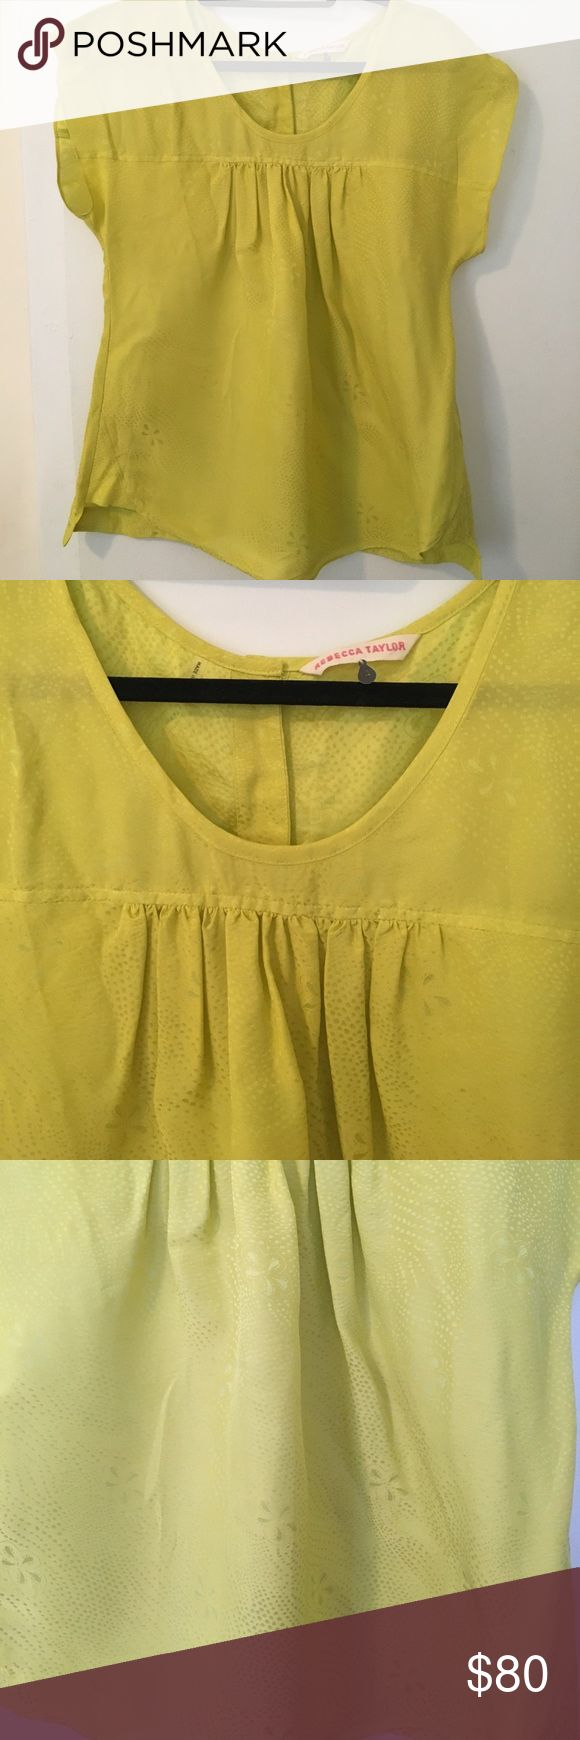 Rebecca Taylor Silk Yellow Short Sleeve Top Rebecca Taylor Yellow silk short sleeve blouse. Size 4. Like new condition. Beautiful subtle print. Rebecca Taylor Tops Blouses